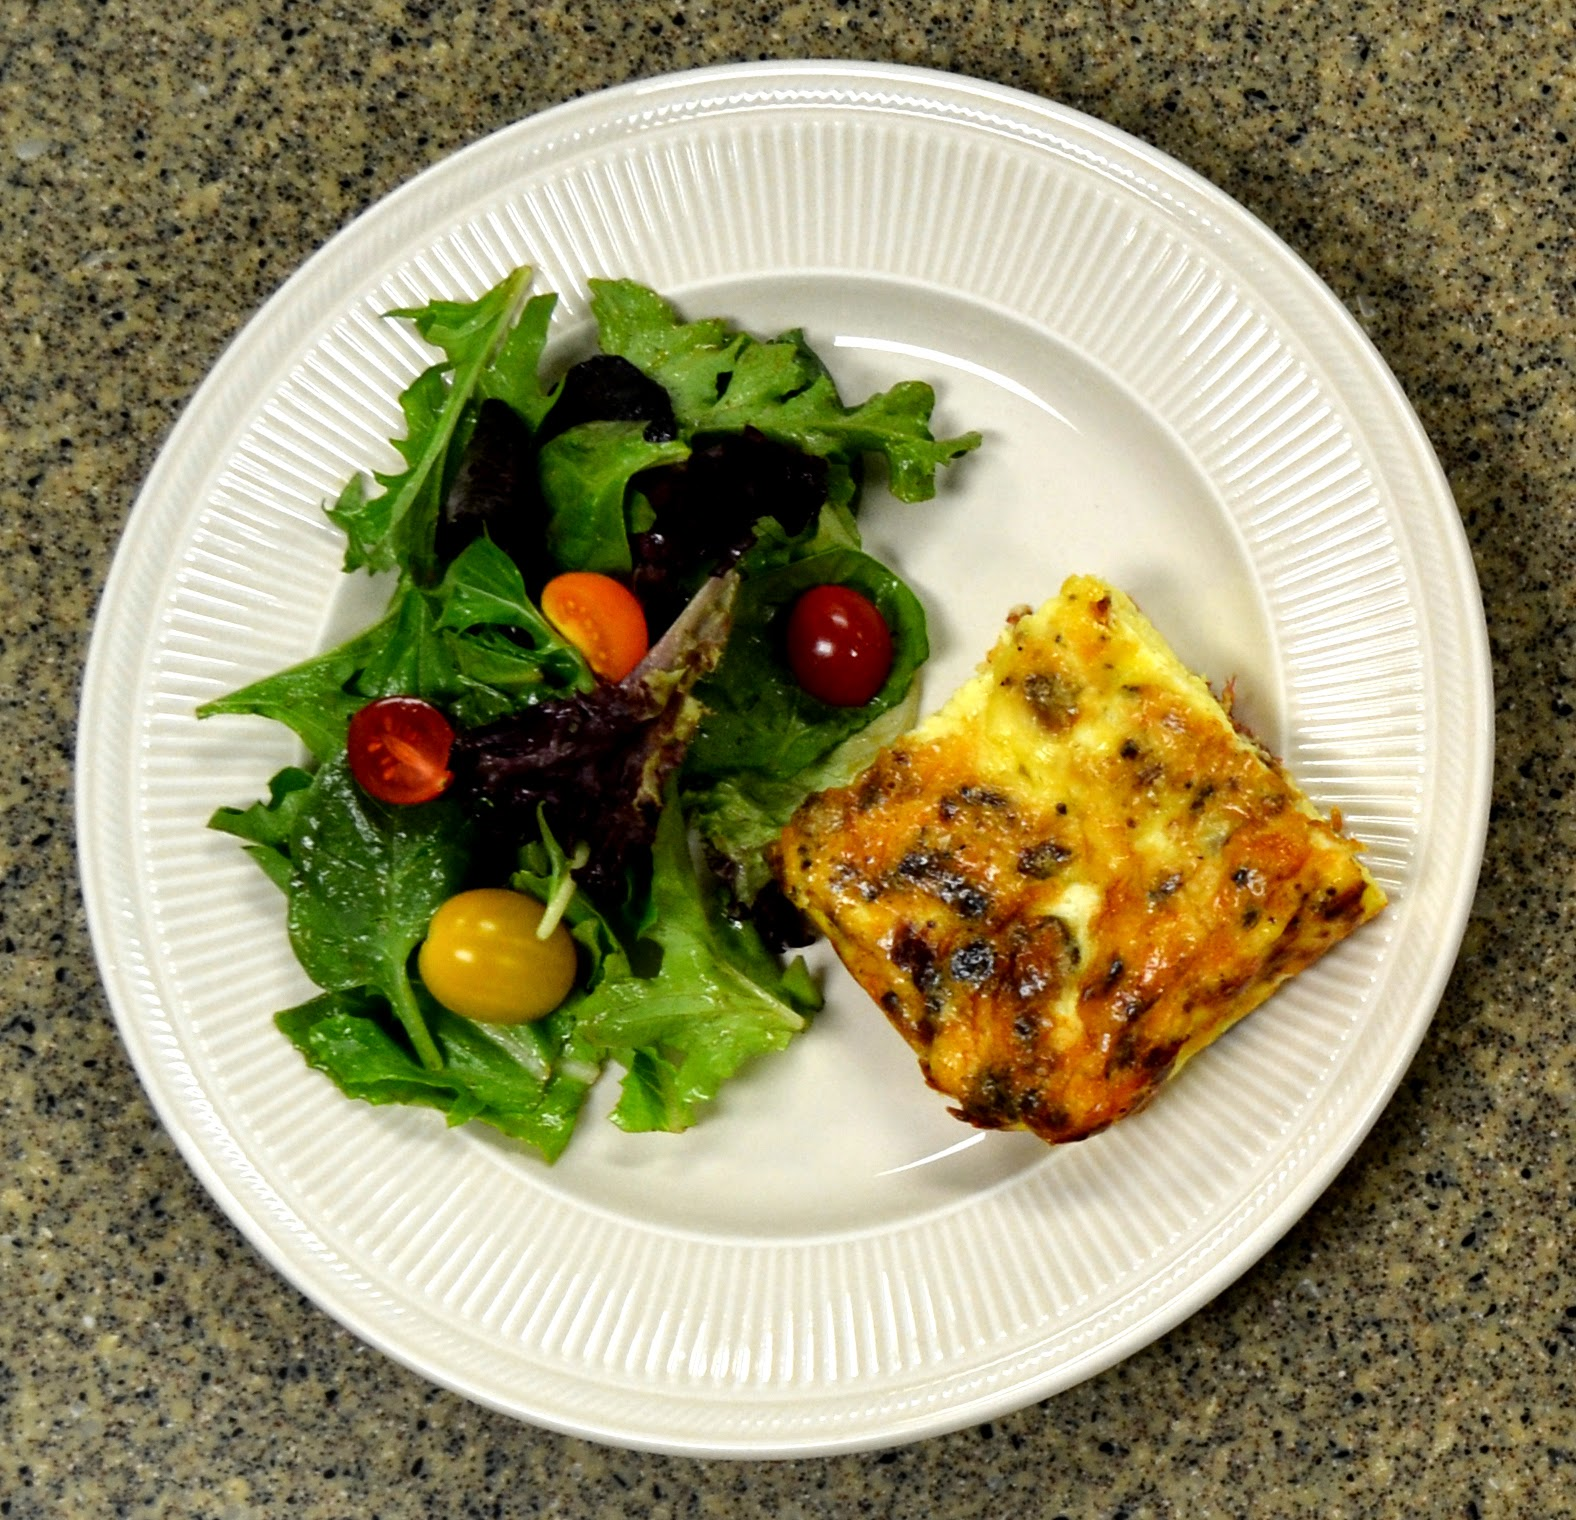 Jungle Jim's Food For Thought: Quiche Lorraine Frittata